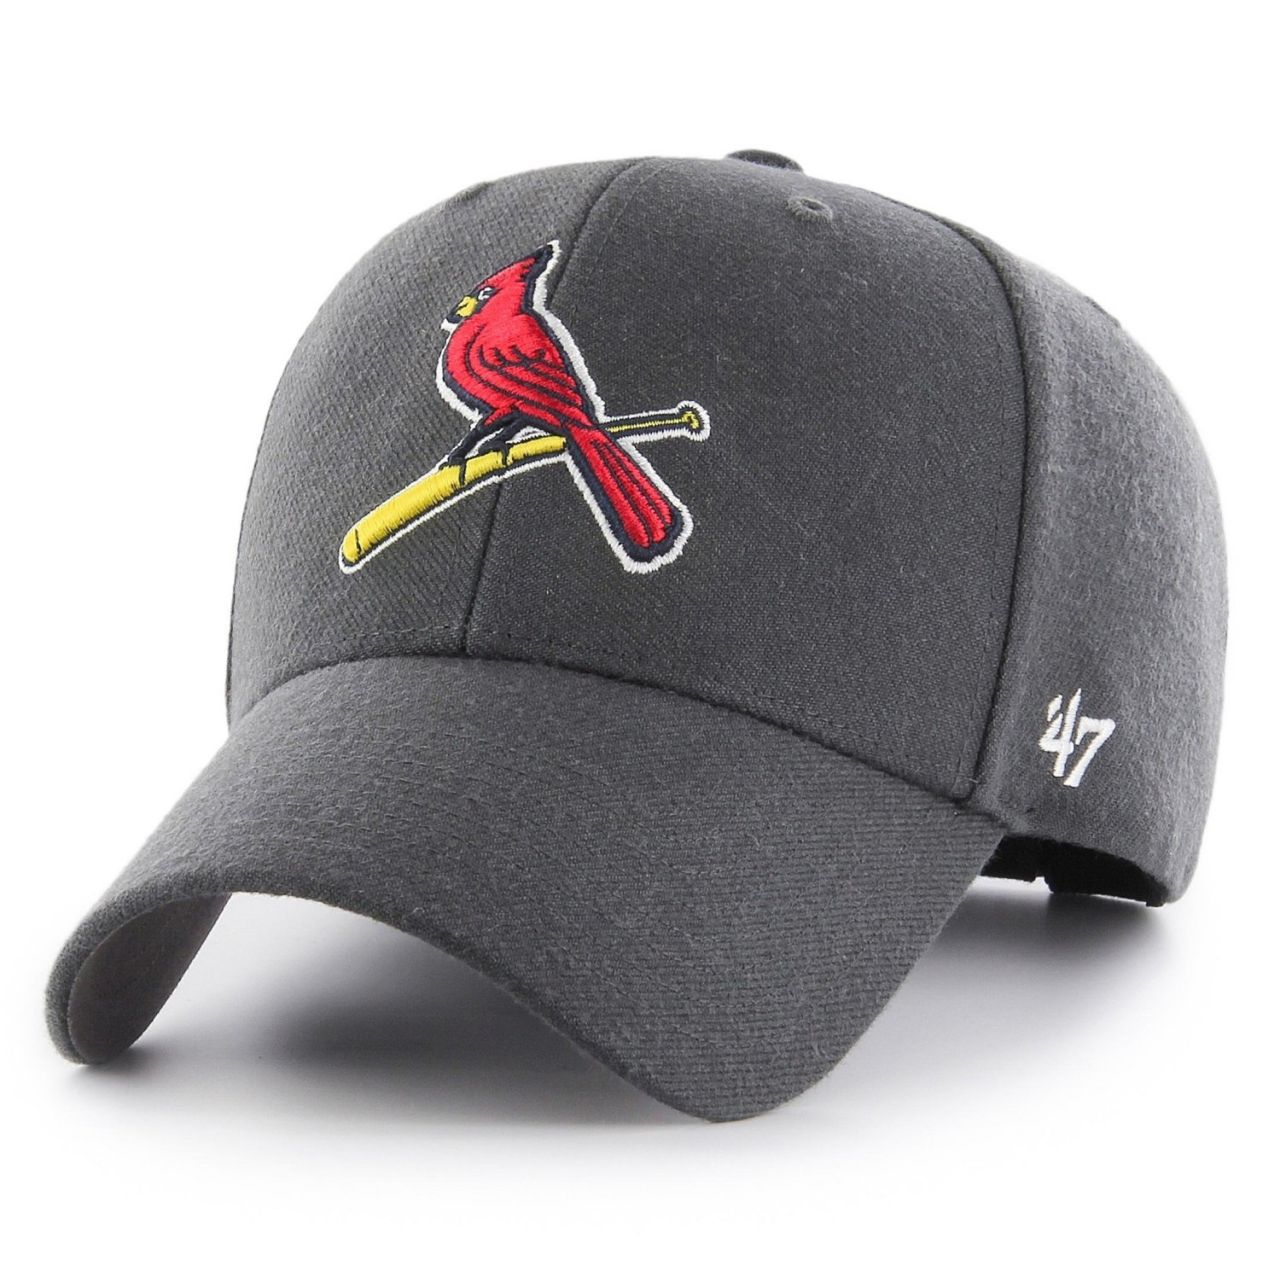 amfoo - 47 Brand Relaxed Fit Cap - MVP VINTAGE St. Louis Cardinals